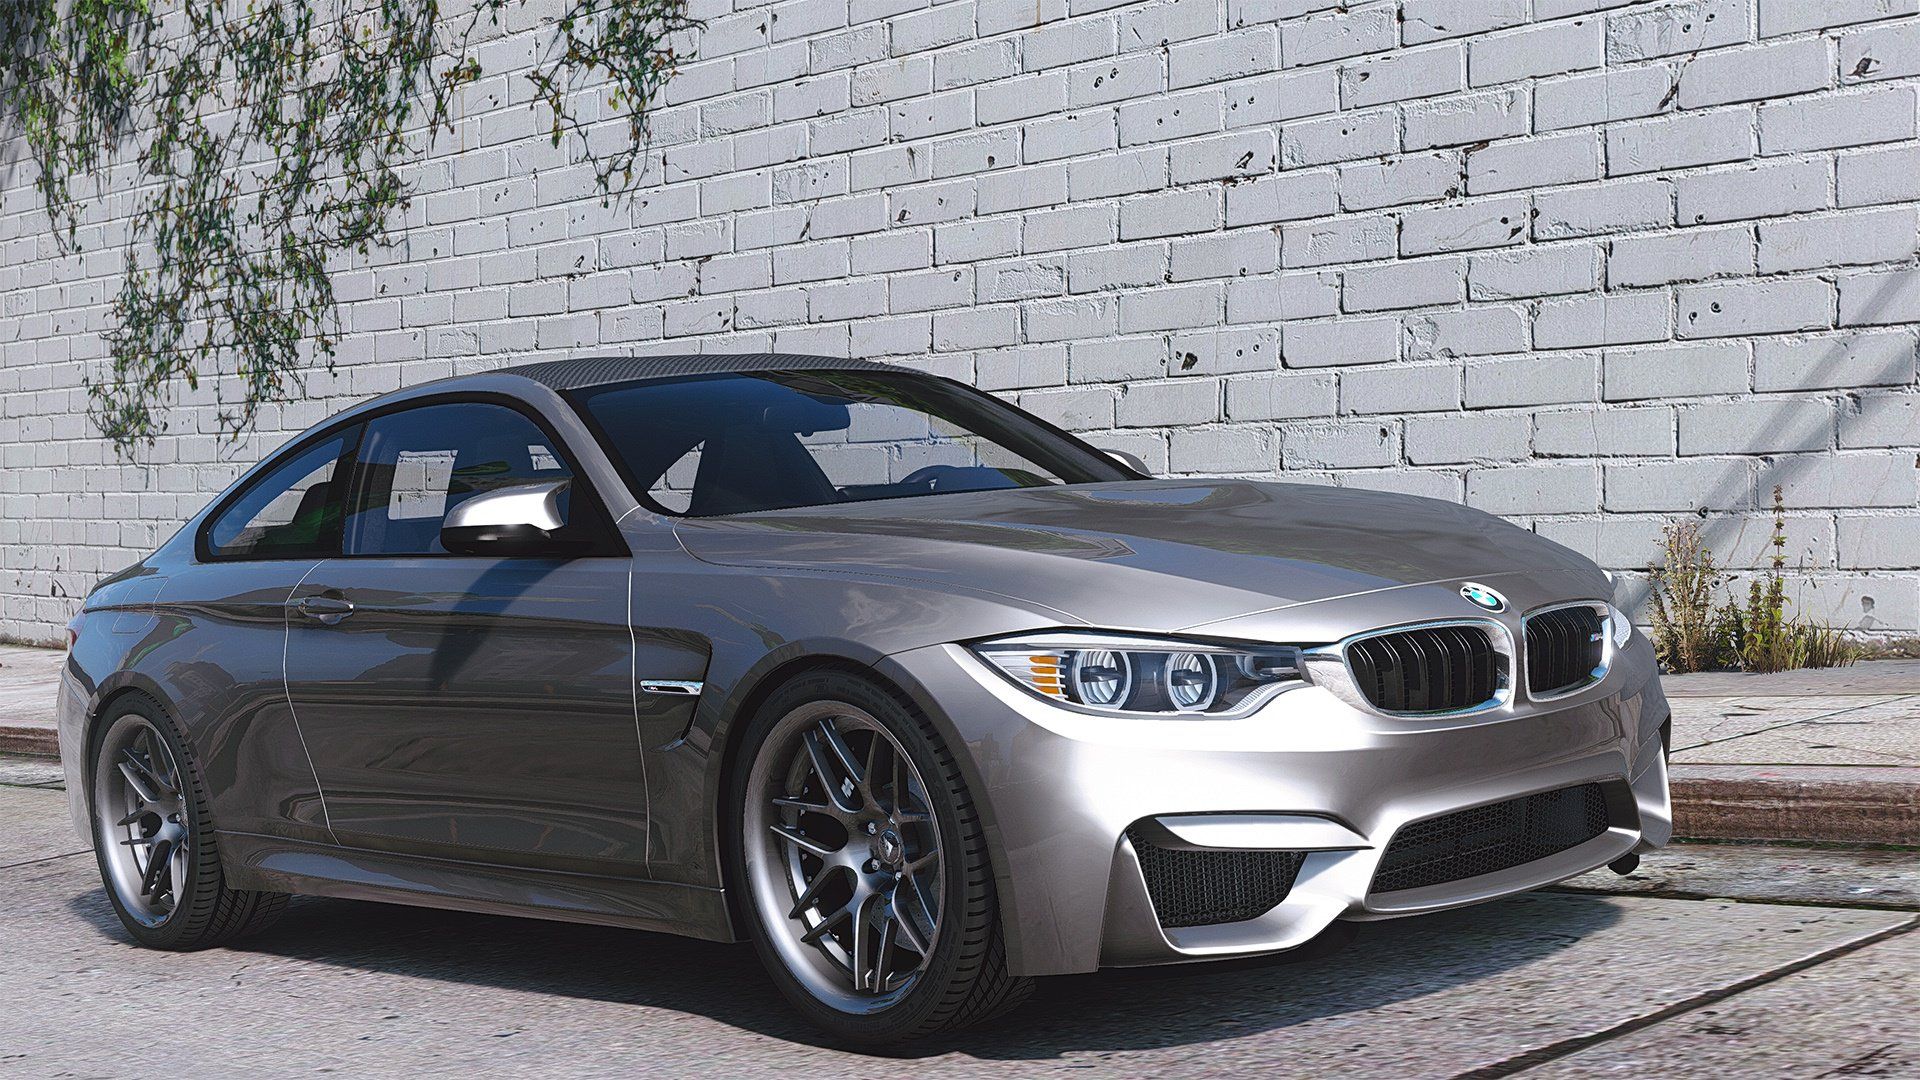 BMW M4 F82 2015 [Add-On / Replace | Animated] - GTA5